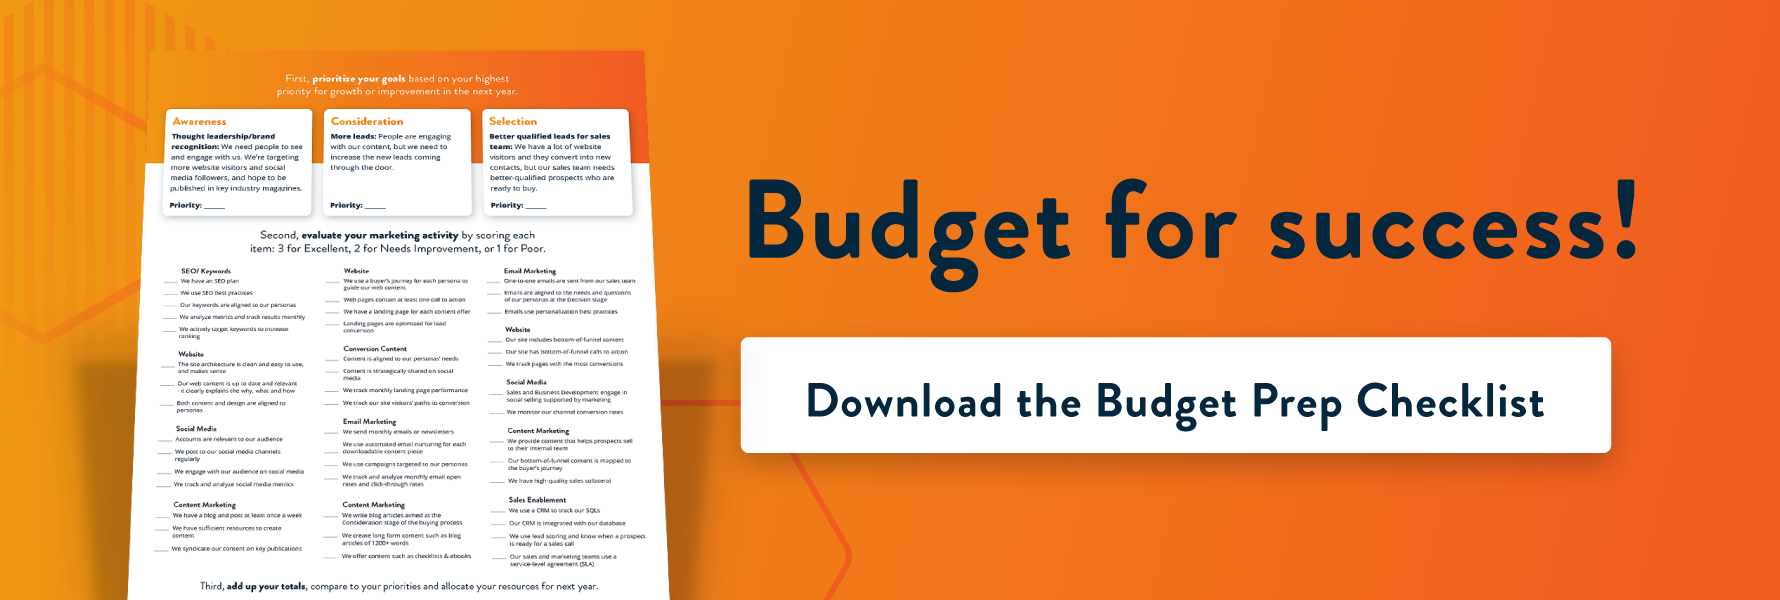 Click to download the Budget Prep Checklist